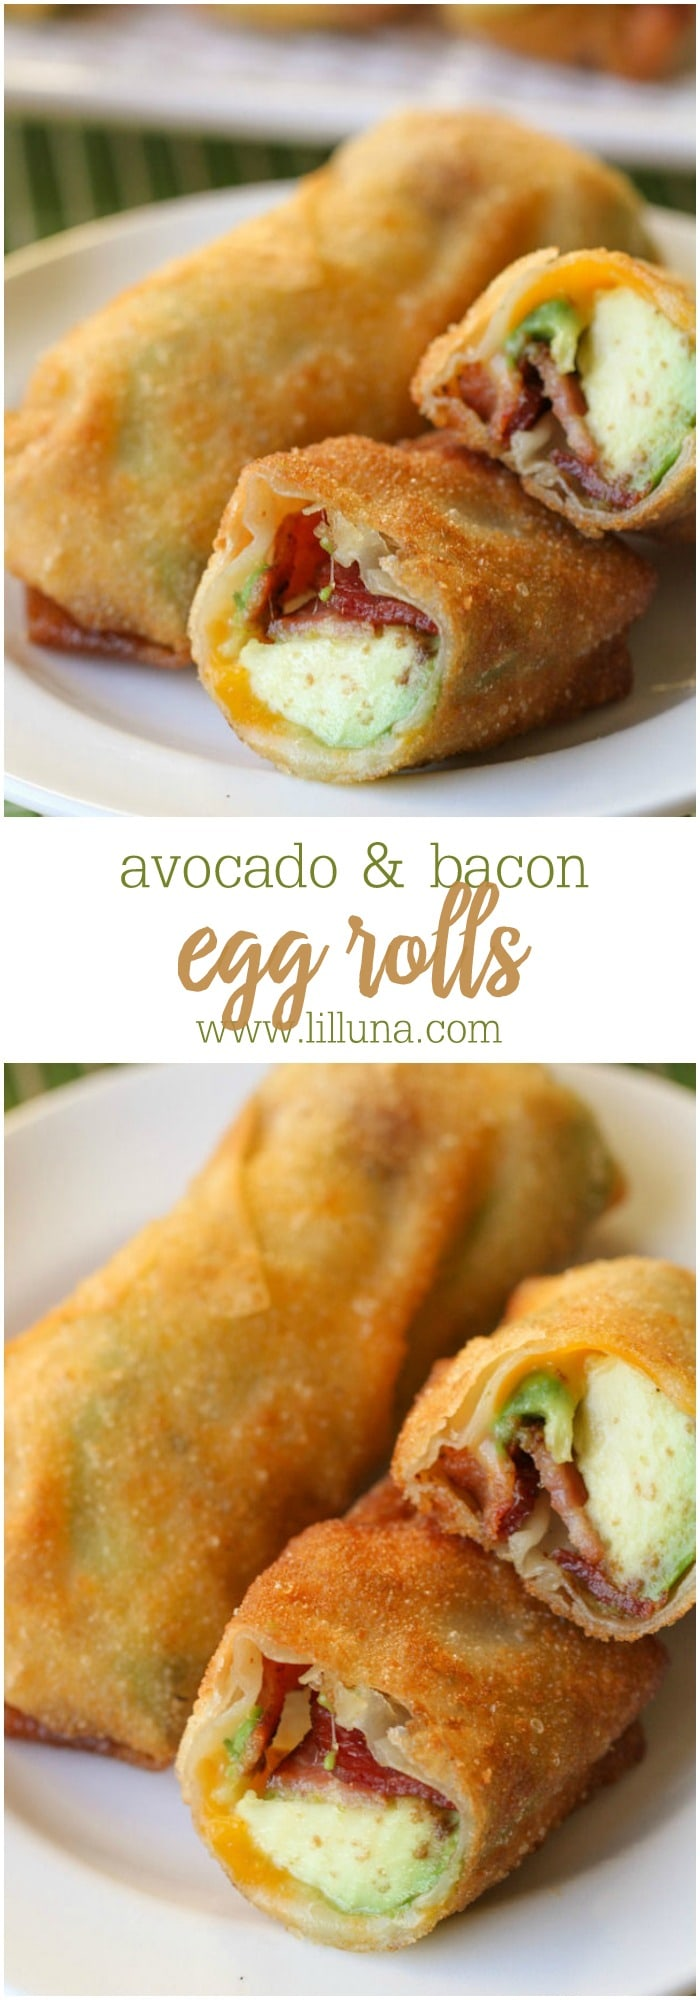 These Avocado Bacon Egg Rolls Recipe are to die for! Can't go wrong when they're filled with avocado, bacon and cheese!